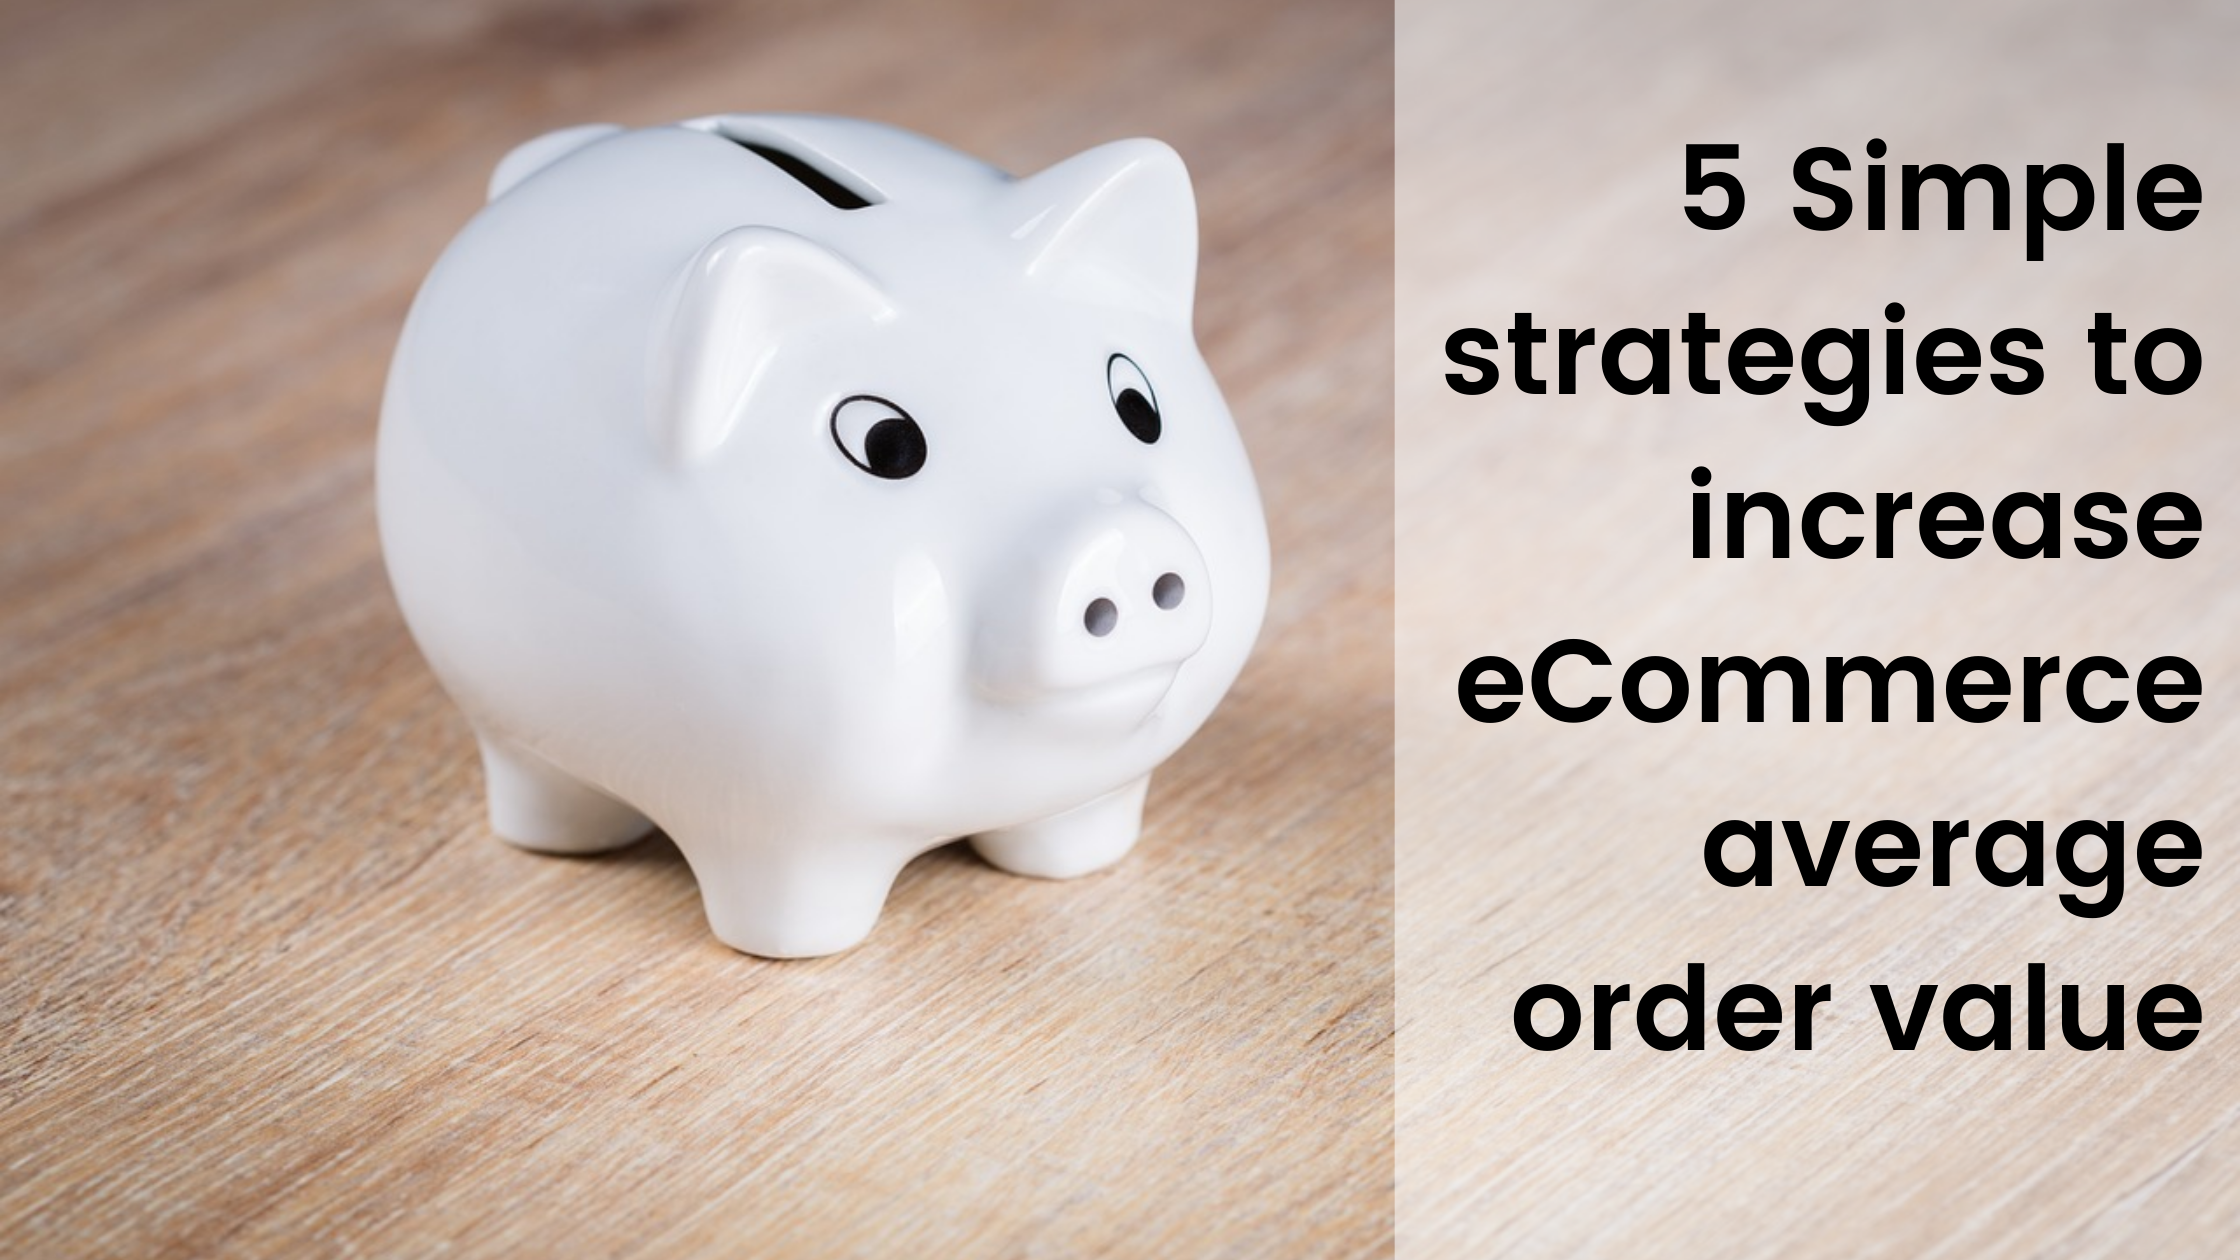 5 simple strategies to increase eCommerce average order value